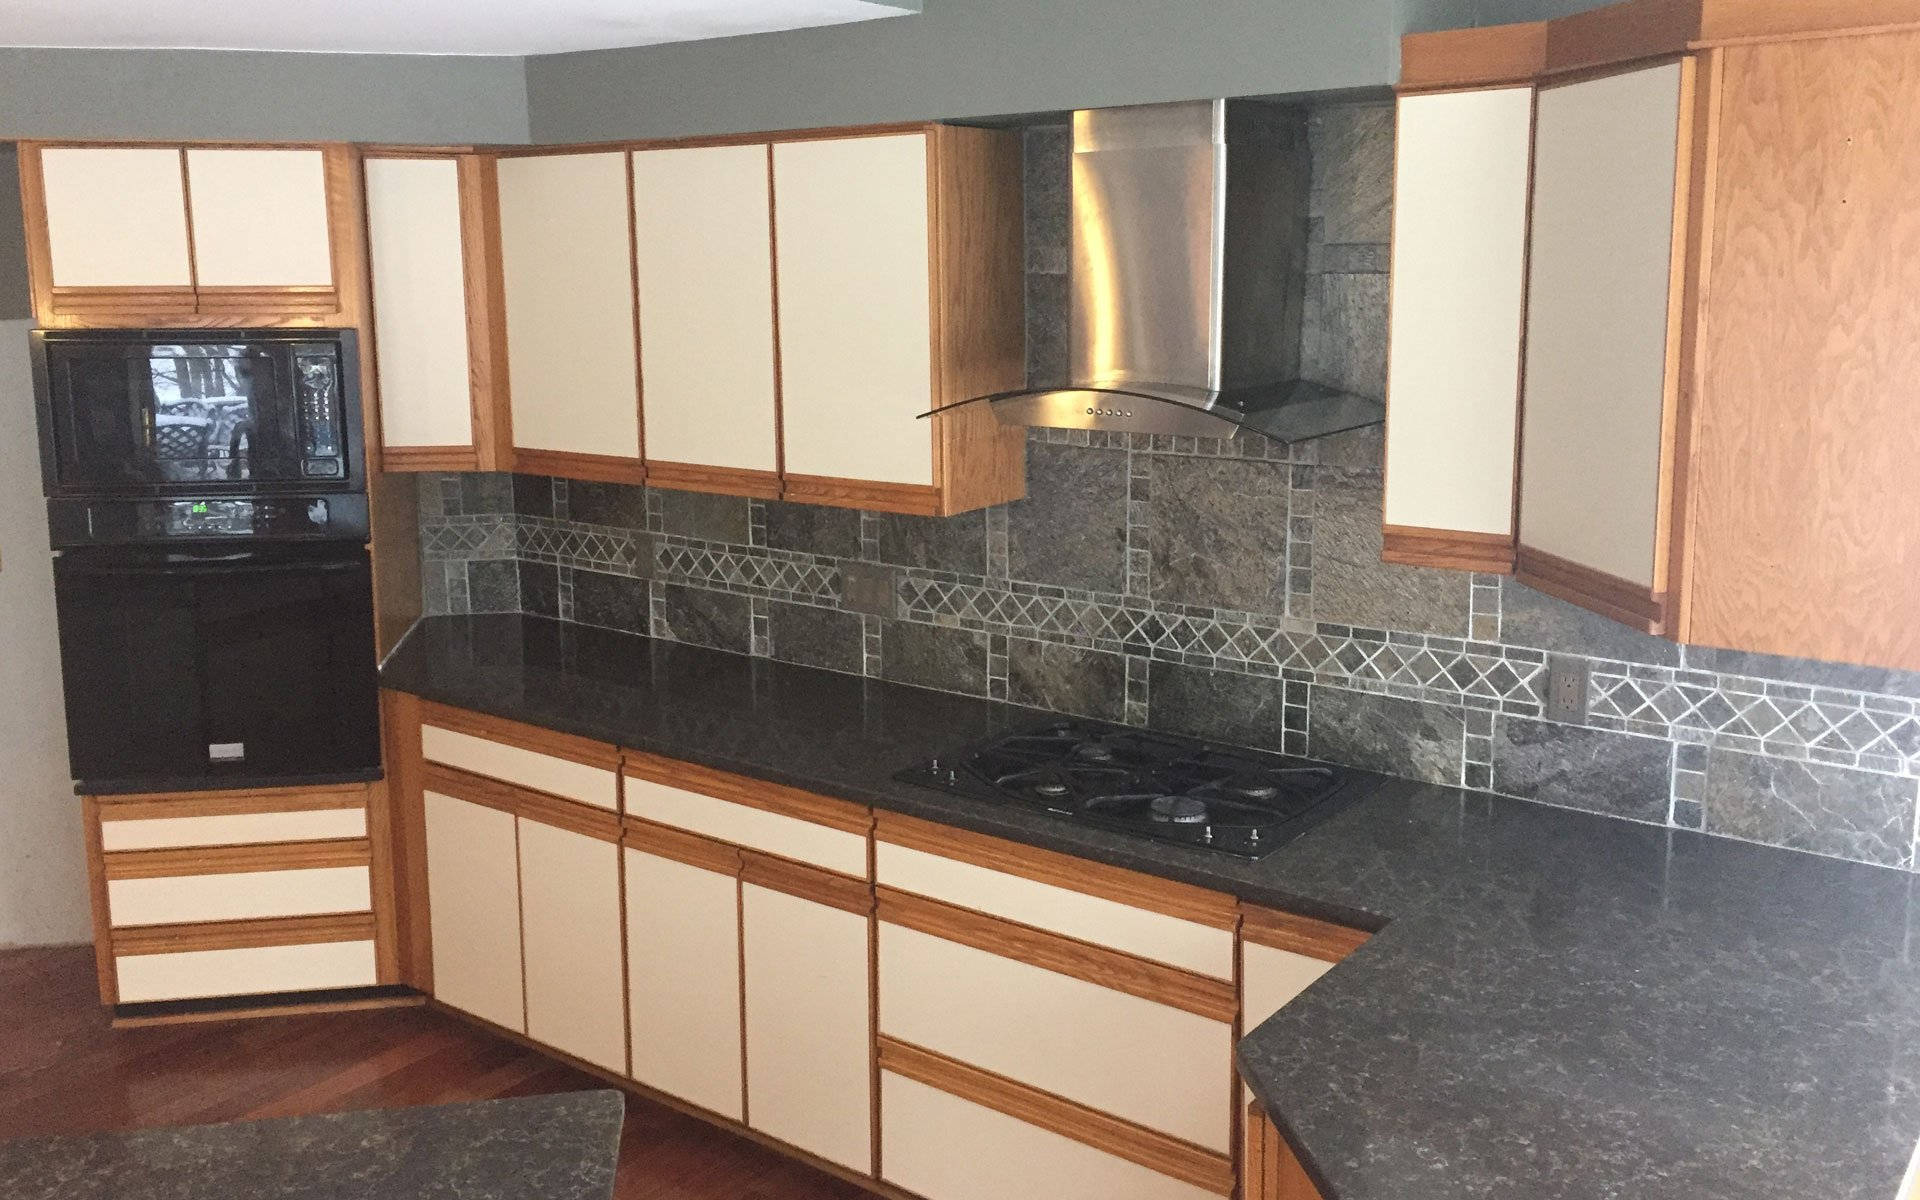 resurface kitchen cabinets premier cabinet refacing amp resurfacing serving buffalo 1920